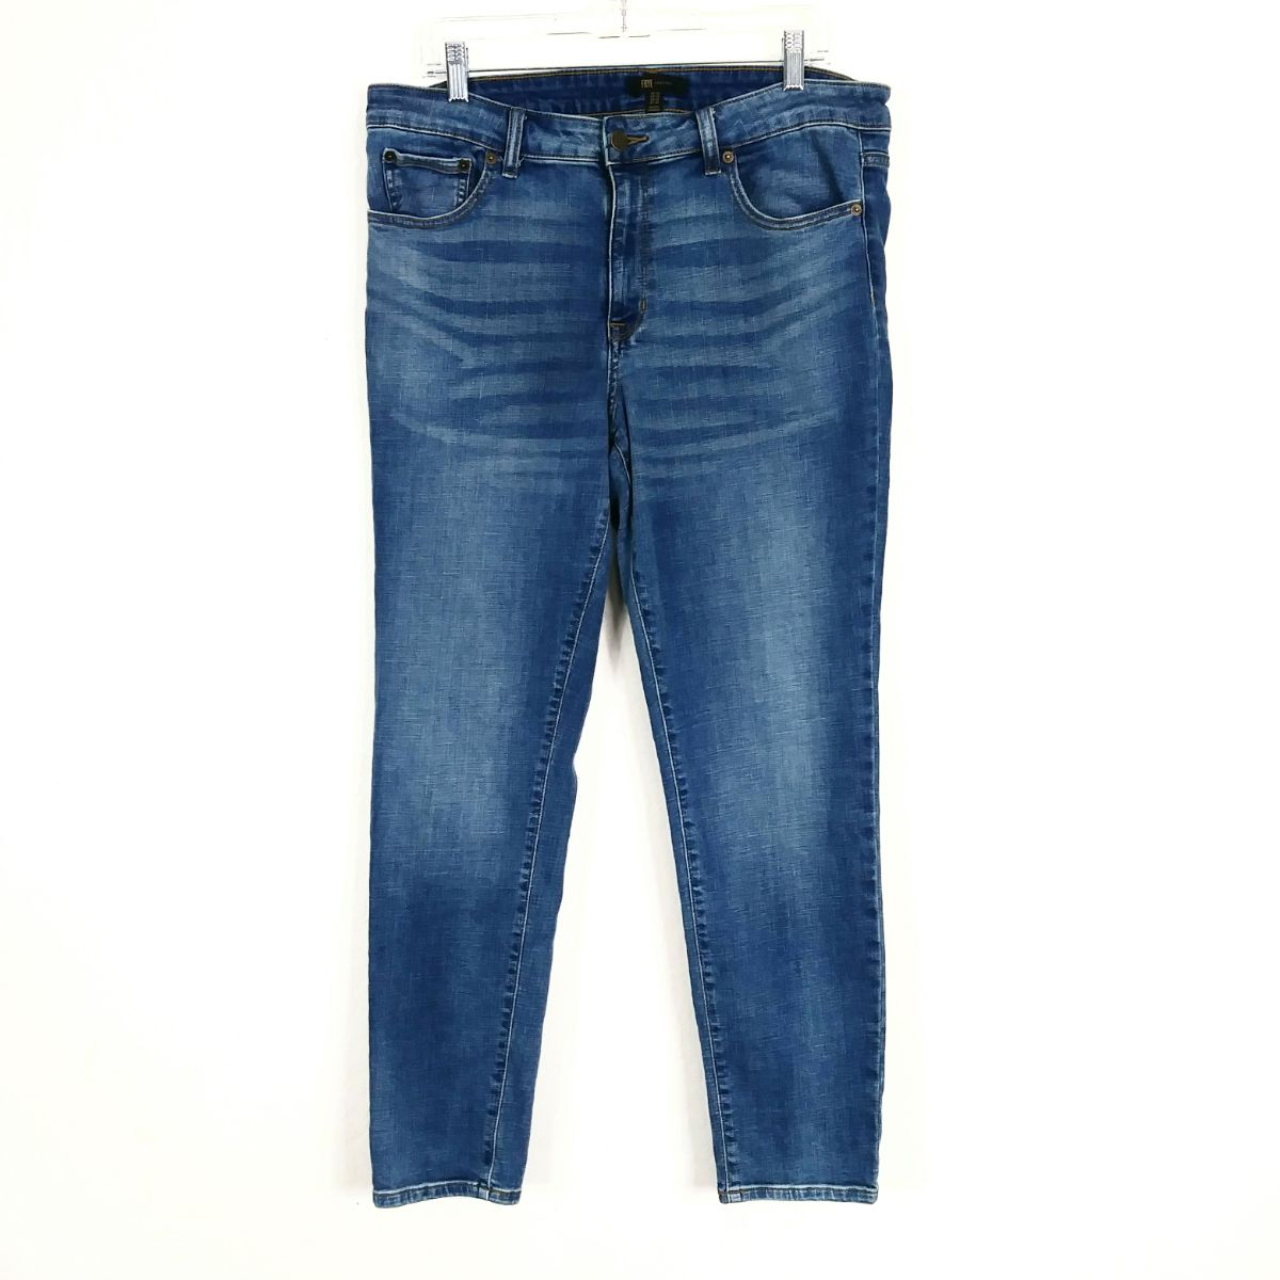 Product Image 1 - Addie high waisted skinny jean